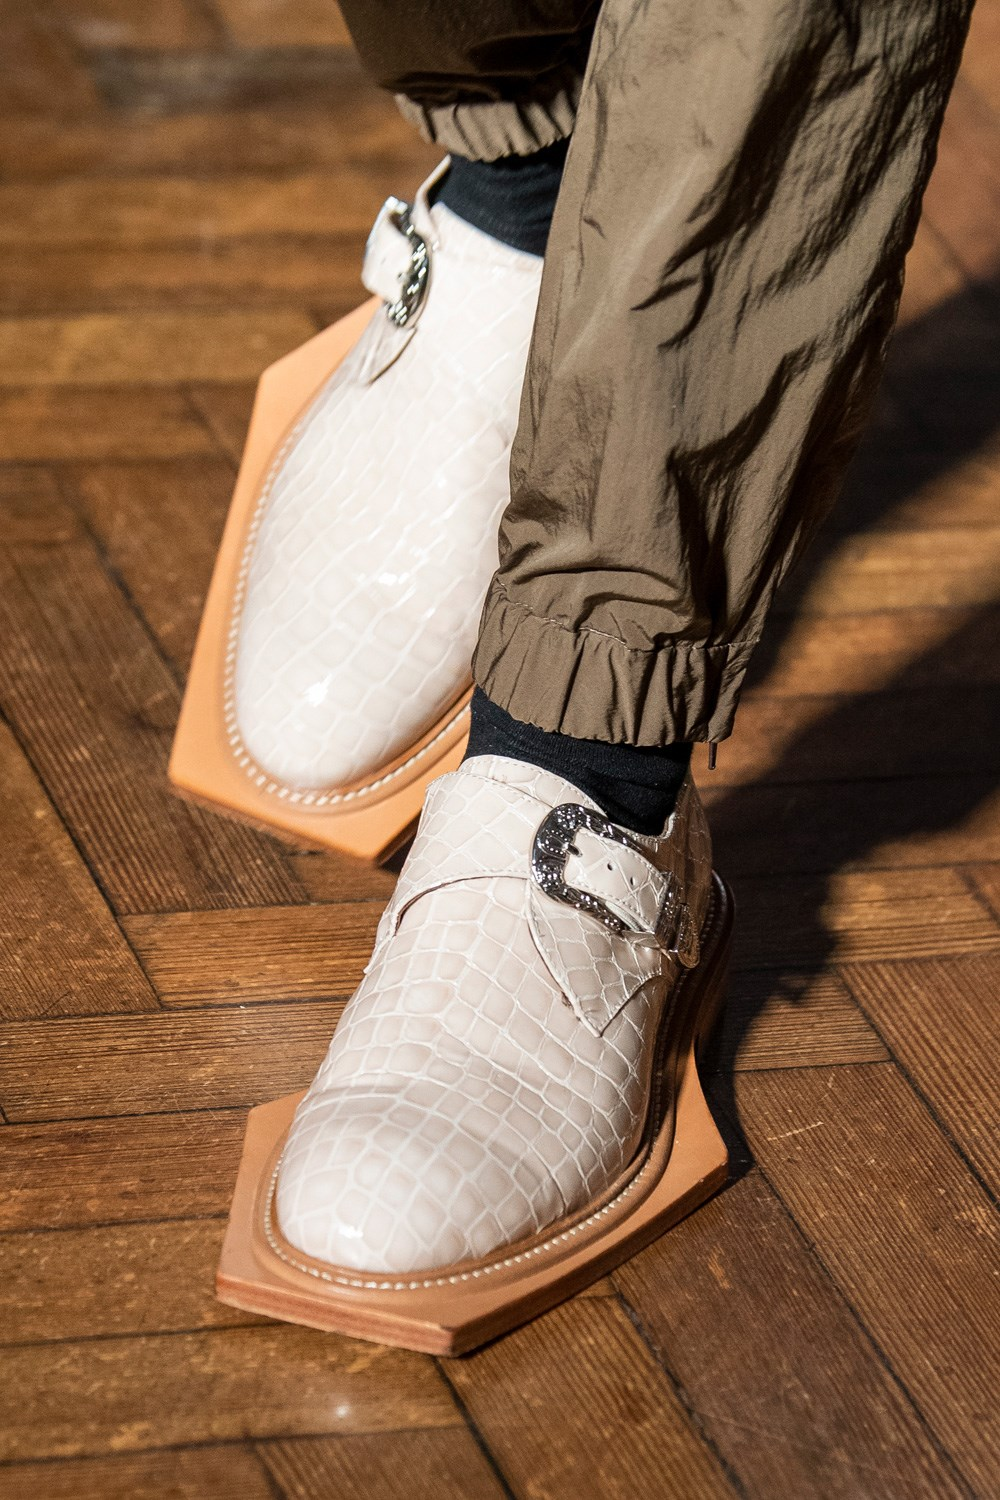 Photo of Martine Rose Fall 2020 Men's Fashion Show Details | The Impr…